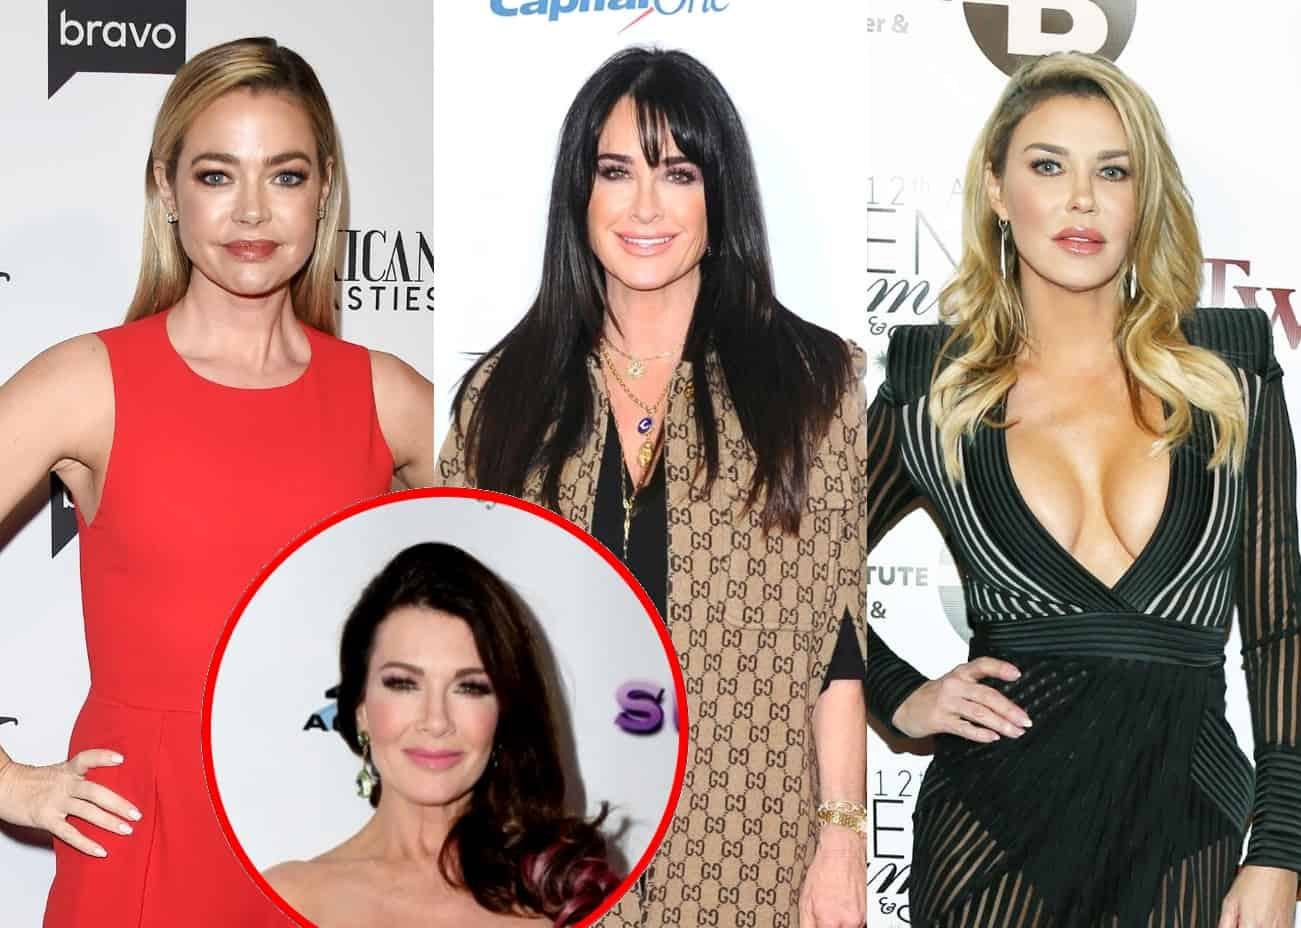 Denise Richards Reacts to the Cease and Desist Drama Between Kyle Richards and Brandi Glanville, Admits She Made a Mistake When Turned on Lisa Vanderpump Last Season